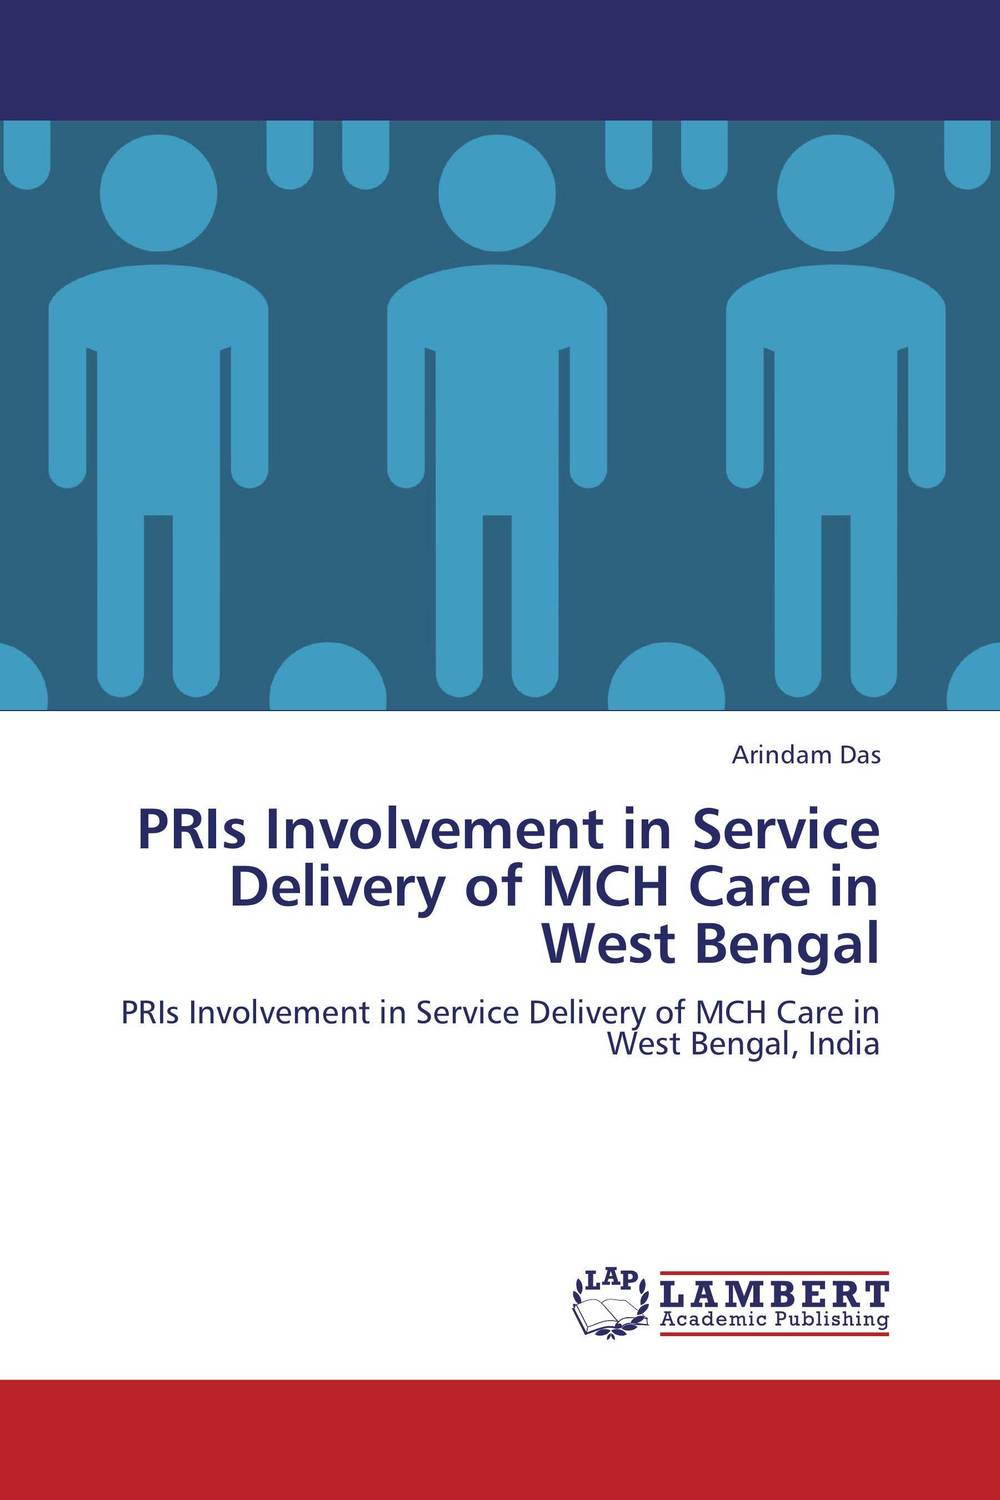 PRIs Involvement in Service Delivery of MCH Care in West Bengal pris involvement in service delivery of mch care in west bengal